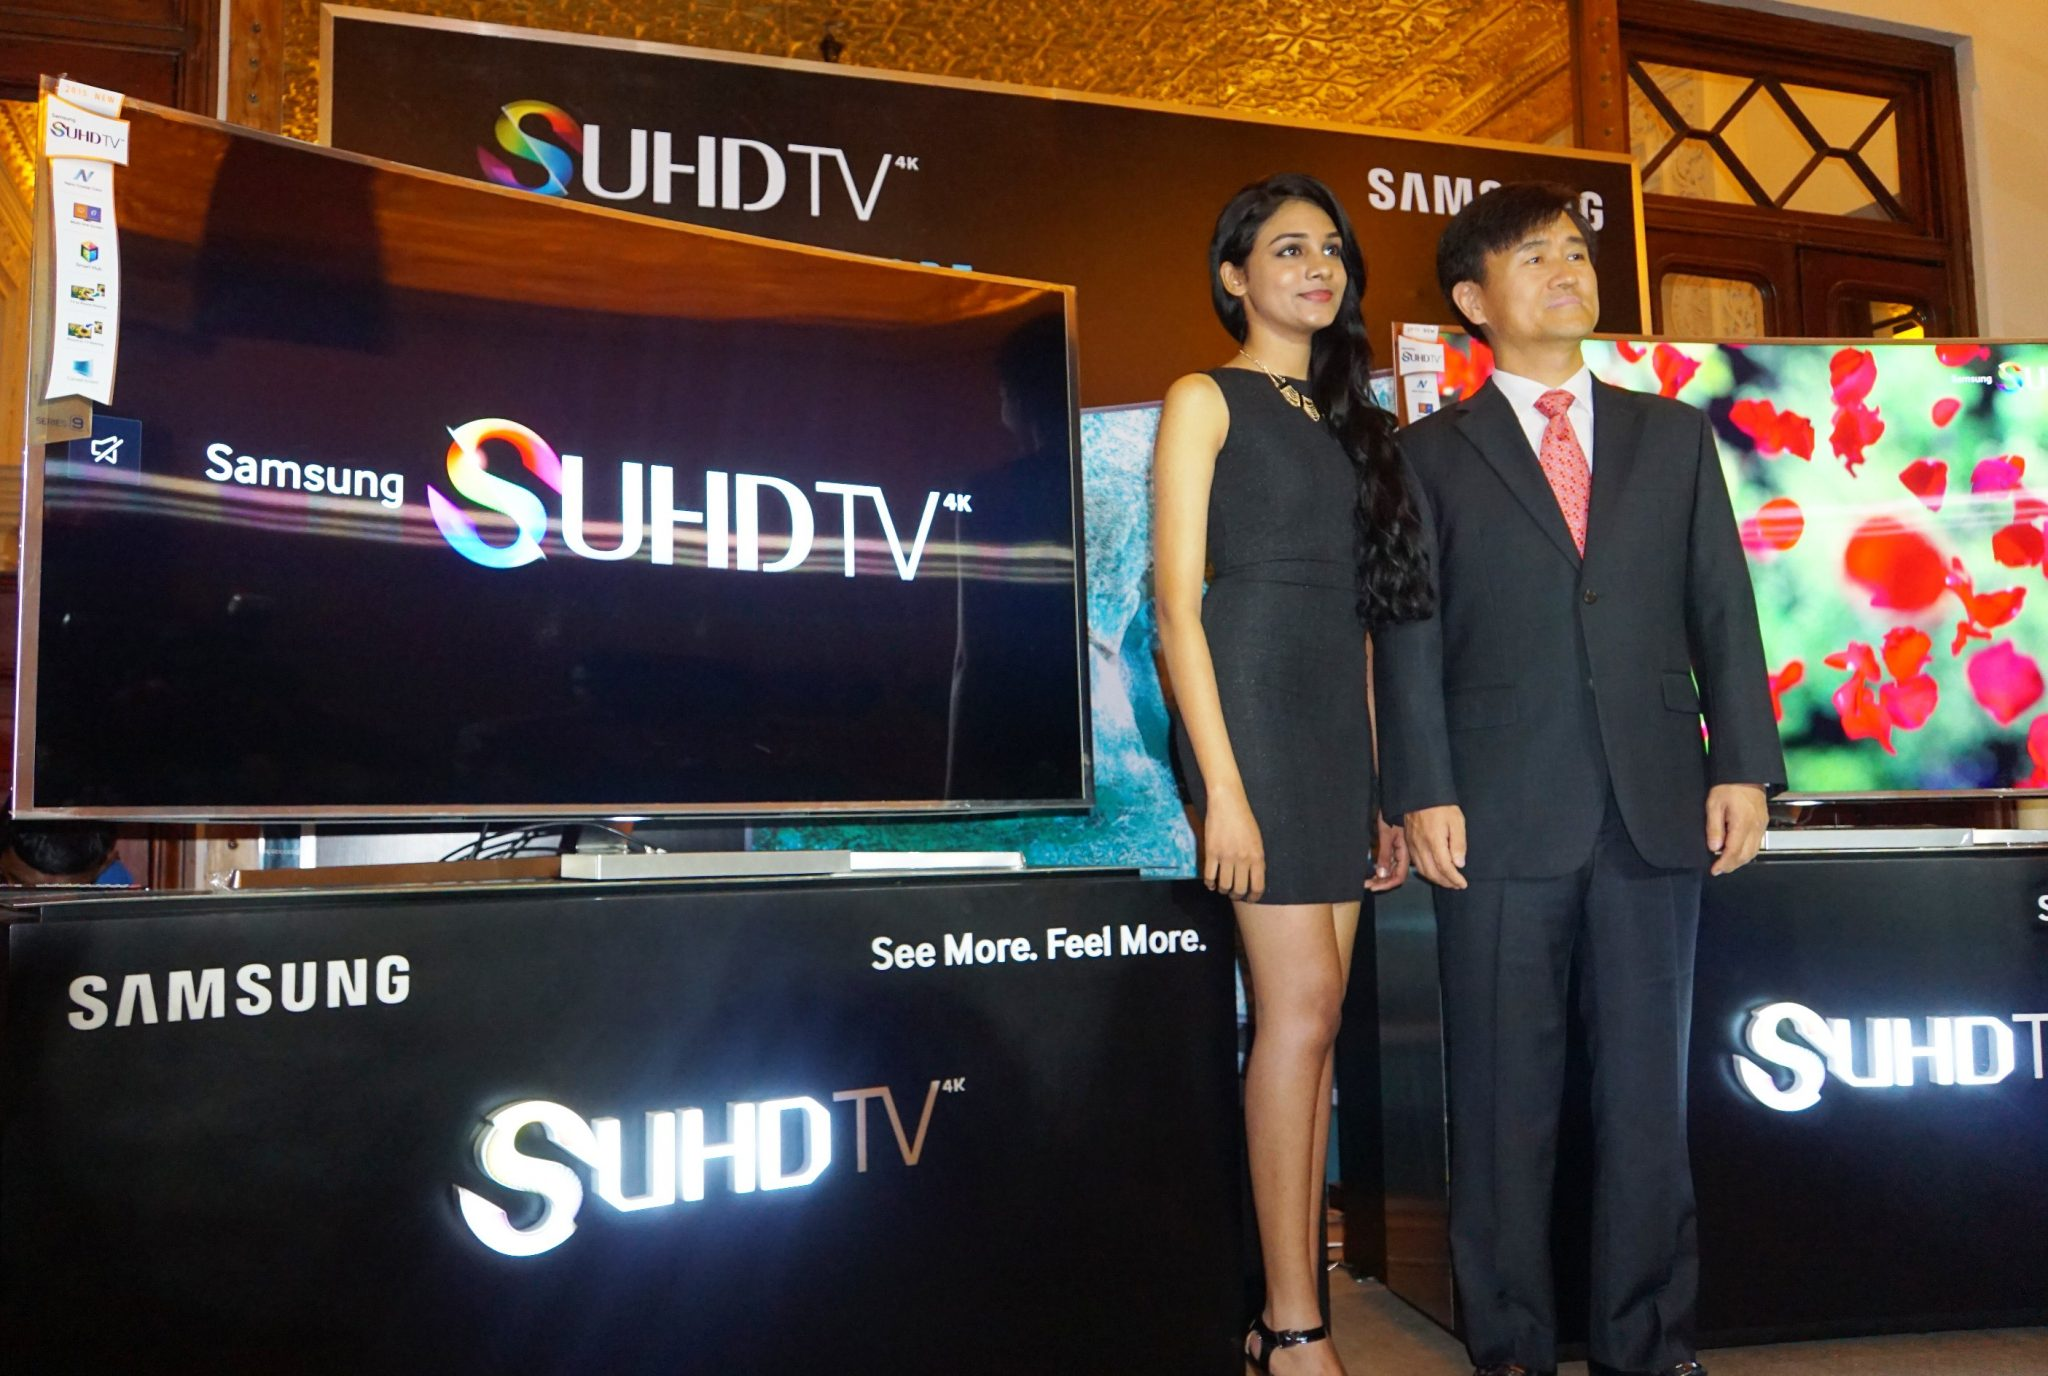 Image 1 - Samsung launches its all new SUHD Curved TVs in Sri Lanka